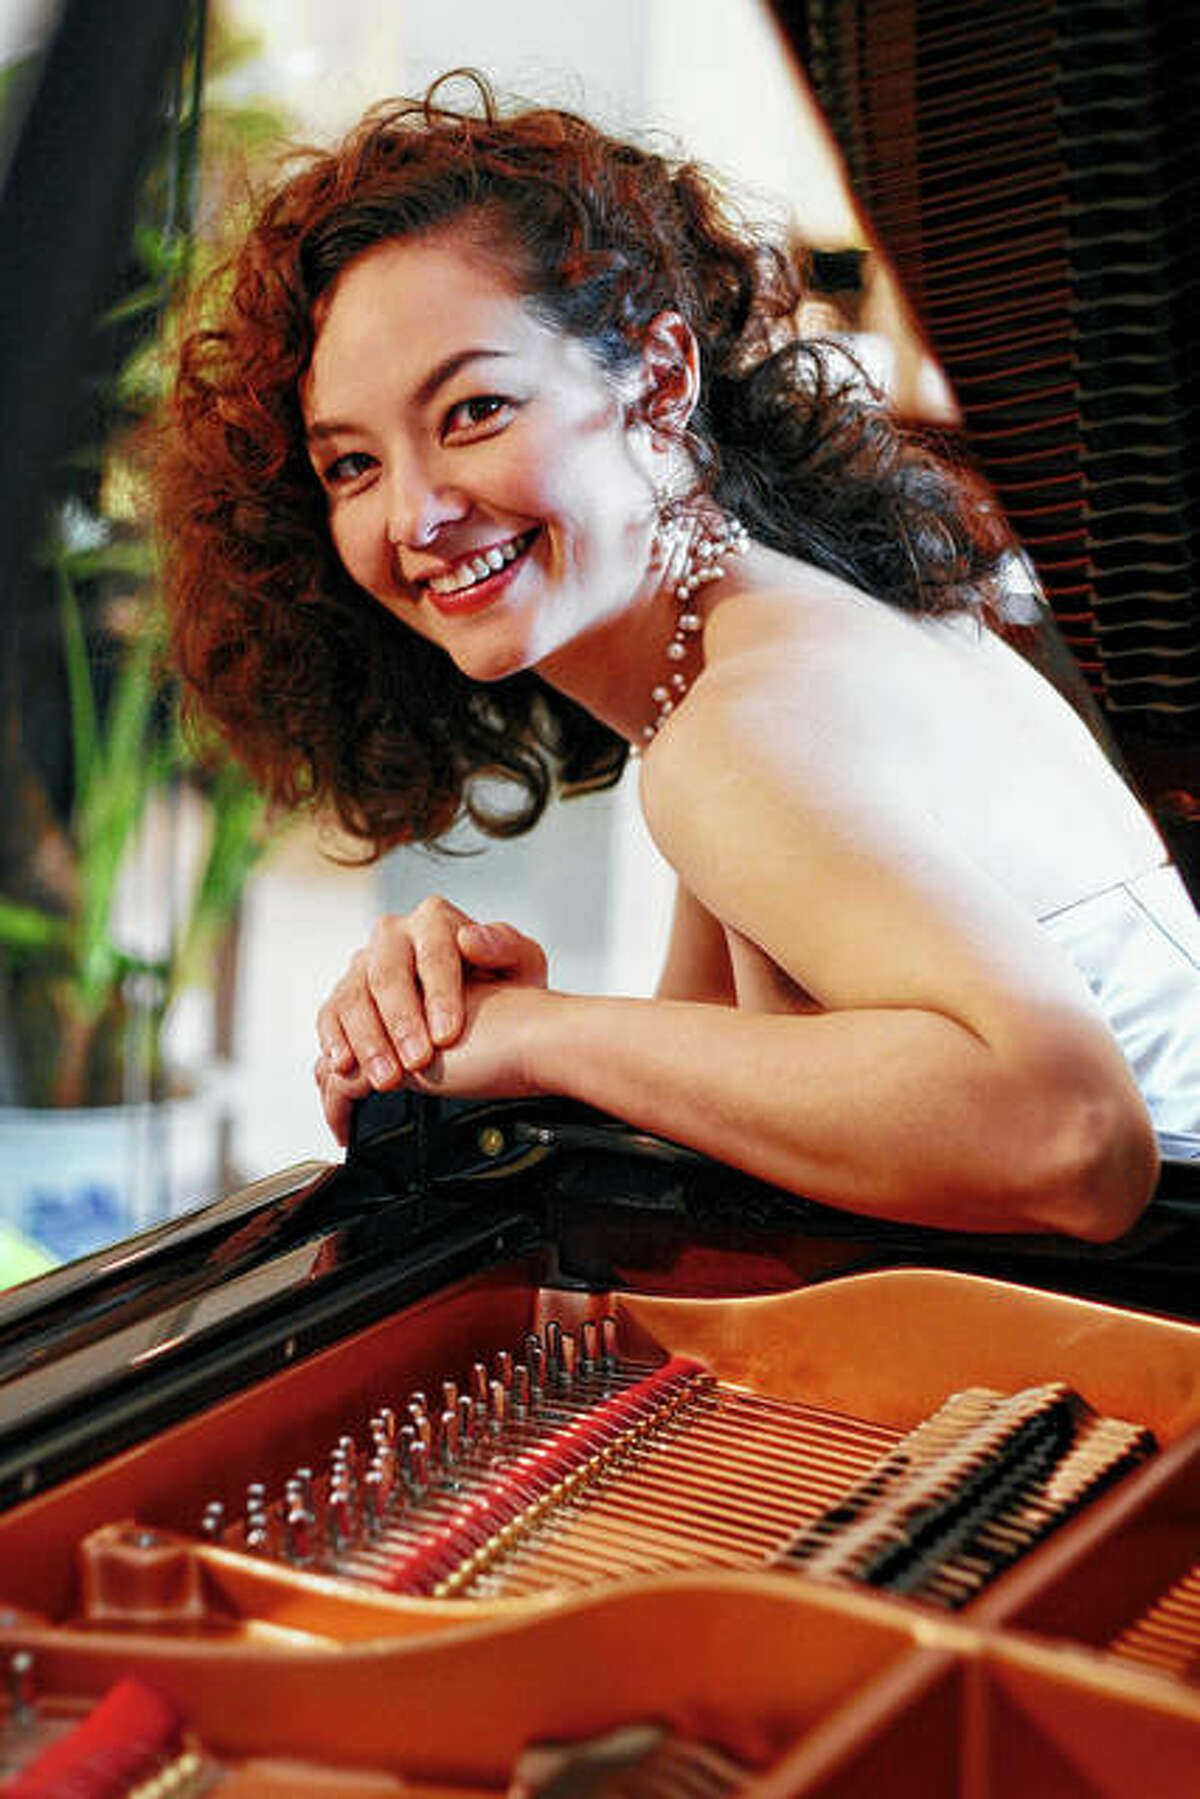 Pianist Sandra Wright Shen will be the guest soloist this weekend during the Illinois Symphony Orchestra's Valentine concerts in Springfield and Bloomington.